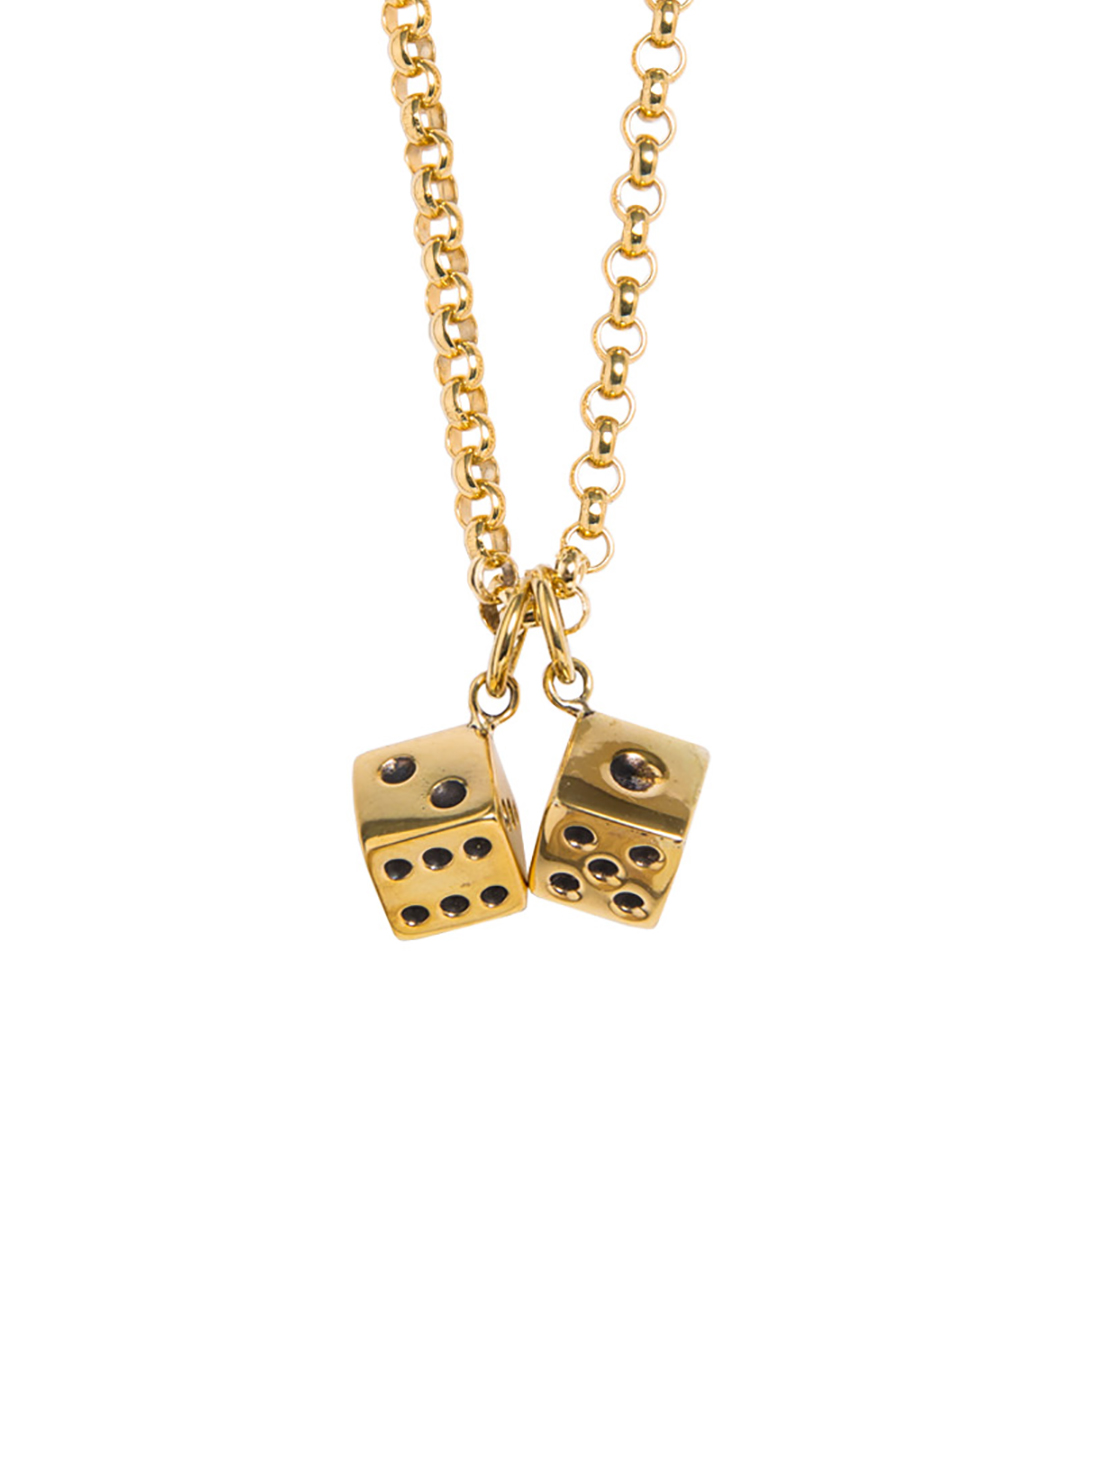 Necklace With Large Double Dice